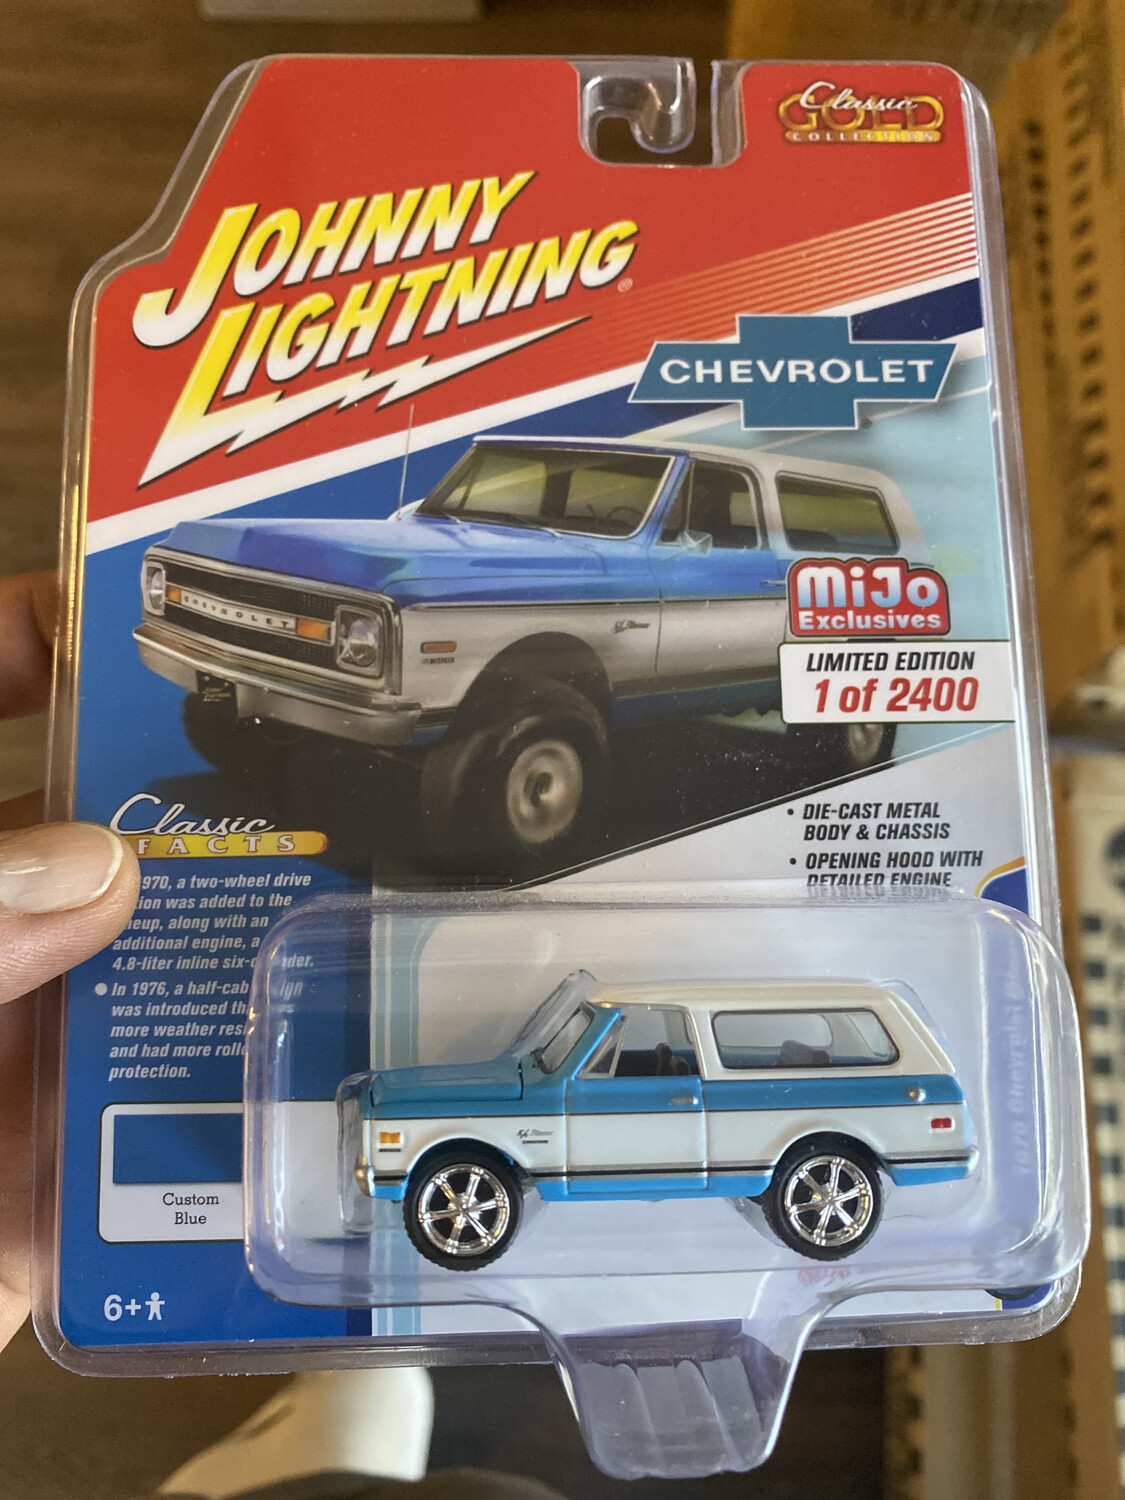 Johnny Lightning-1970 Chevrolet Blazer - Blue